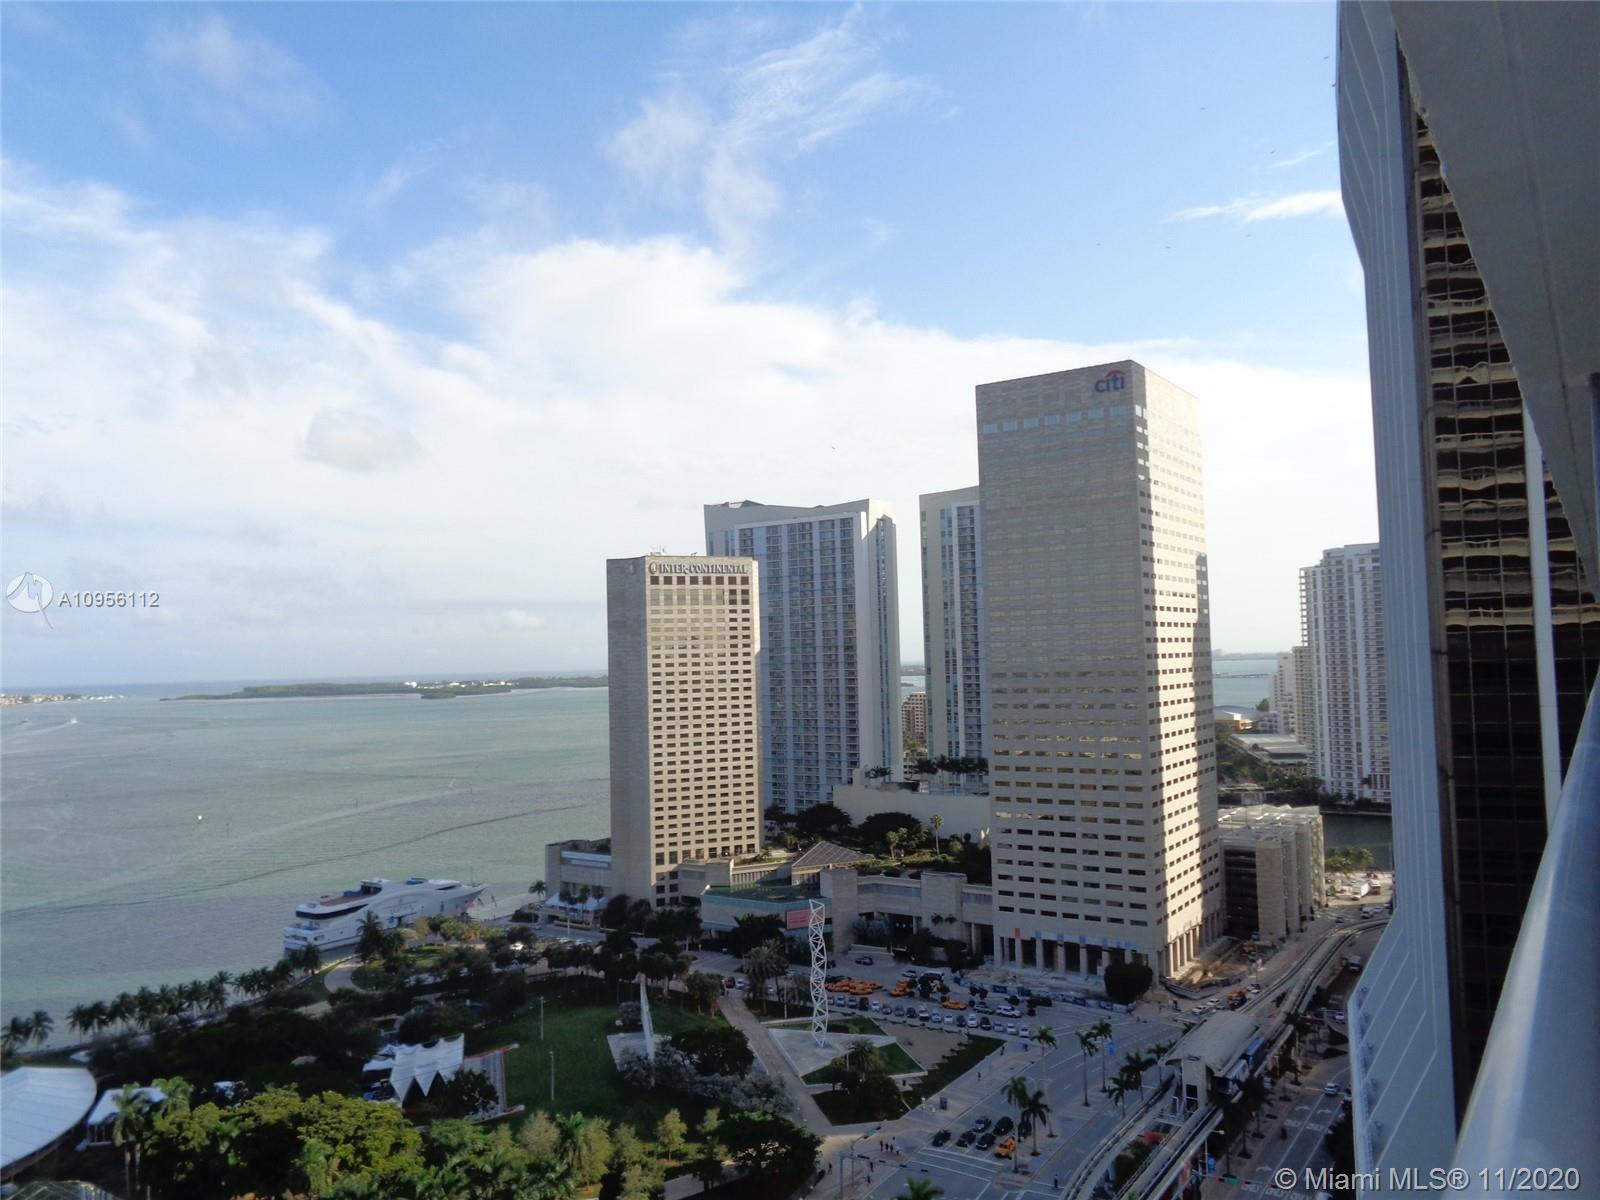 Spectacular Bay and Miami Beach views from this spacious 2 bedrooms 2 baths, plus den unit. 50 Biscayne offers high speed internet access, infinity pool, gym and two party rooms. 24/7 security, valet and concierge service. Centrally located, walking distance to many stores and restaurants.